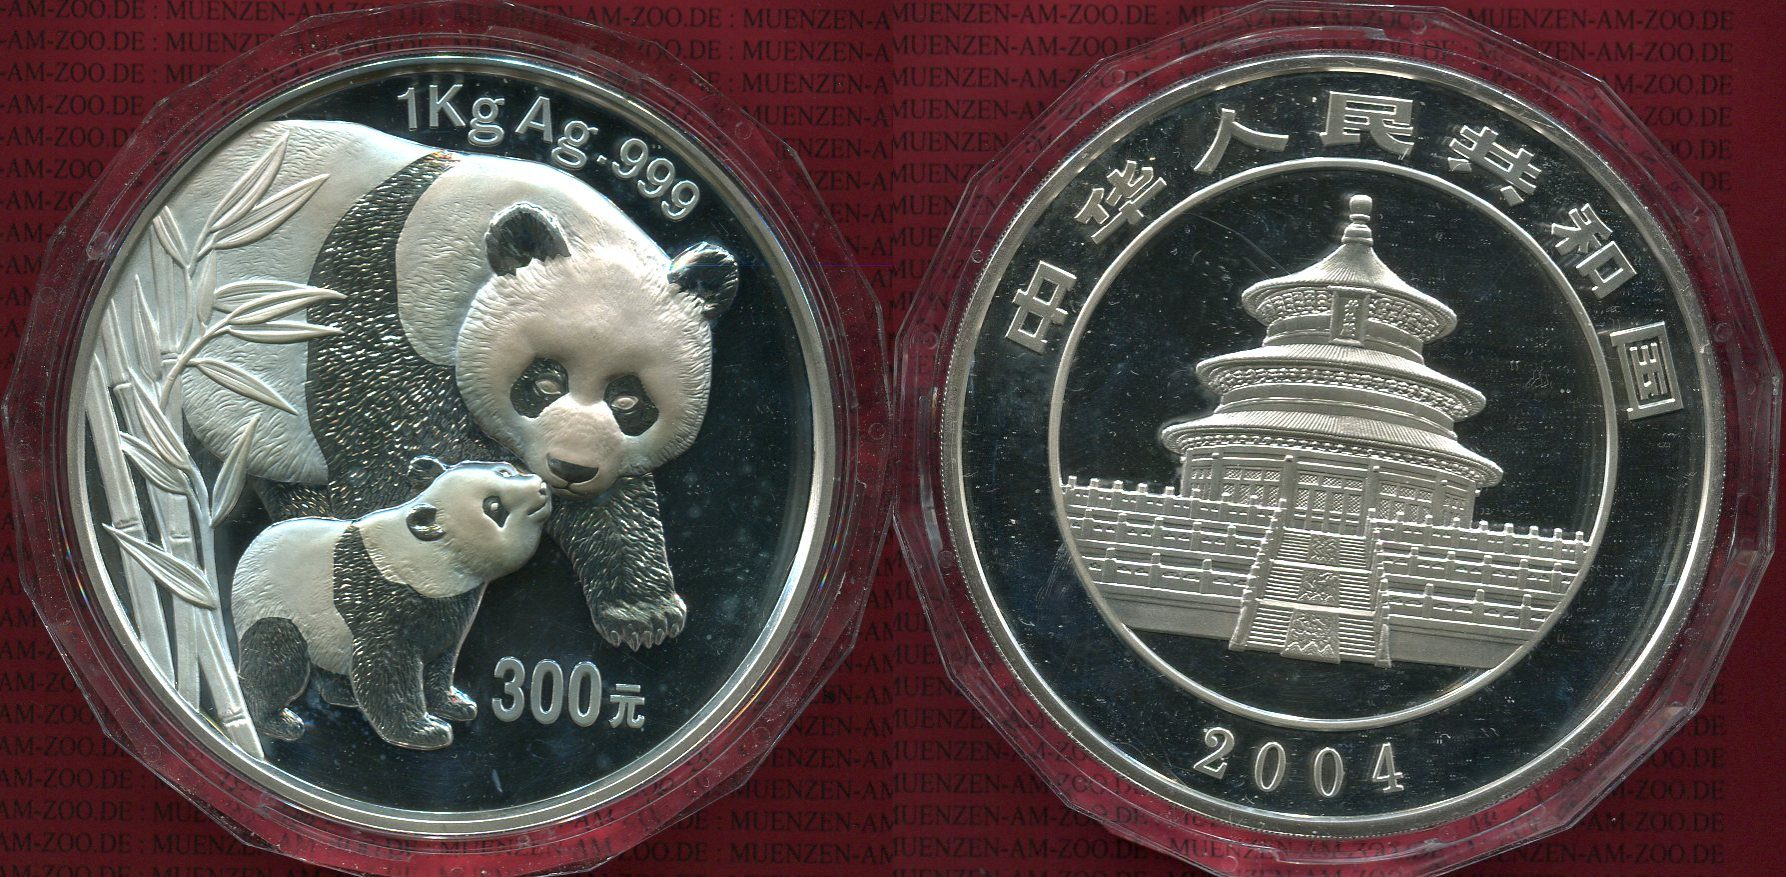 300 Yuan 1 Kilo Silber 2004 China Volksrepublik Prc China 1 Kilo 300